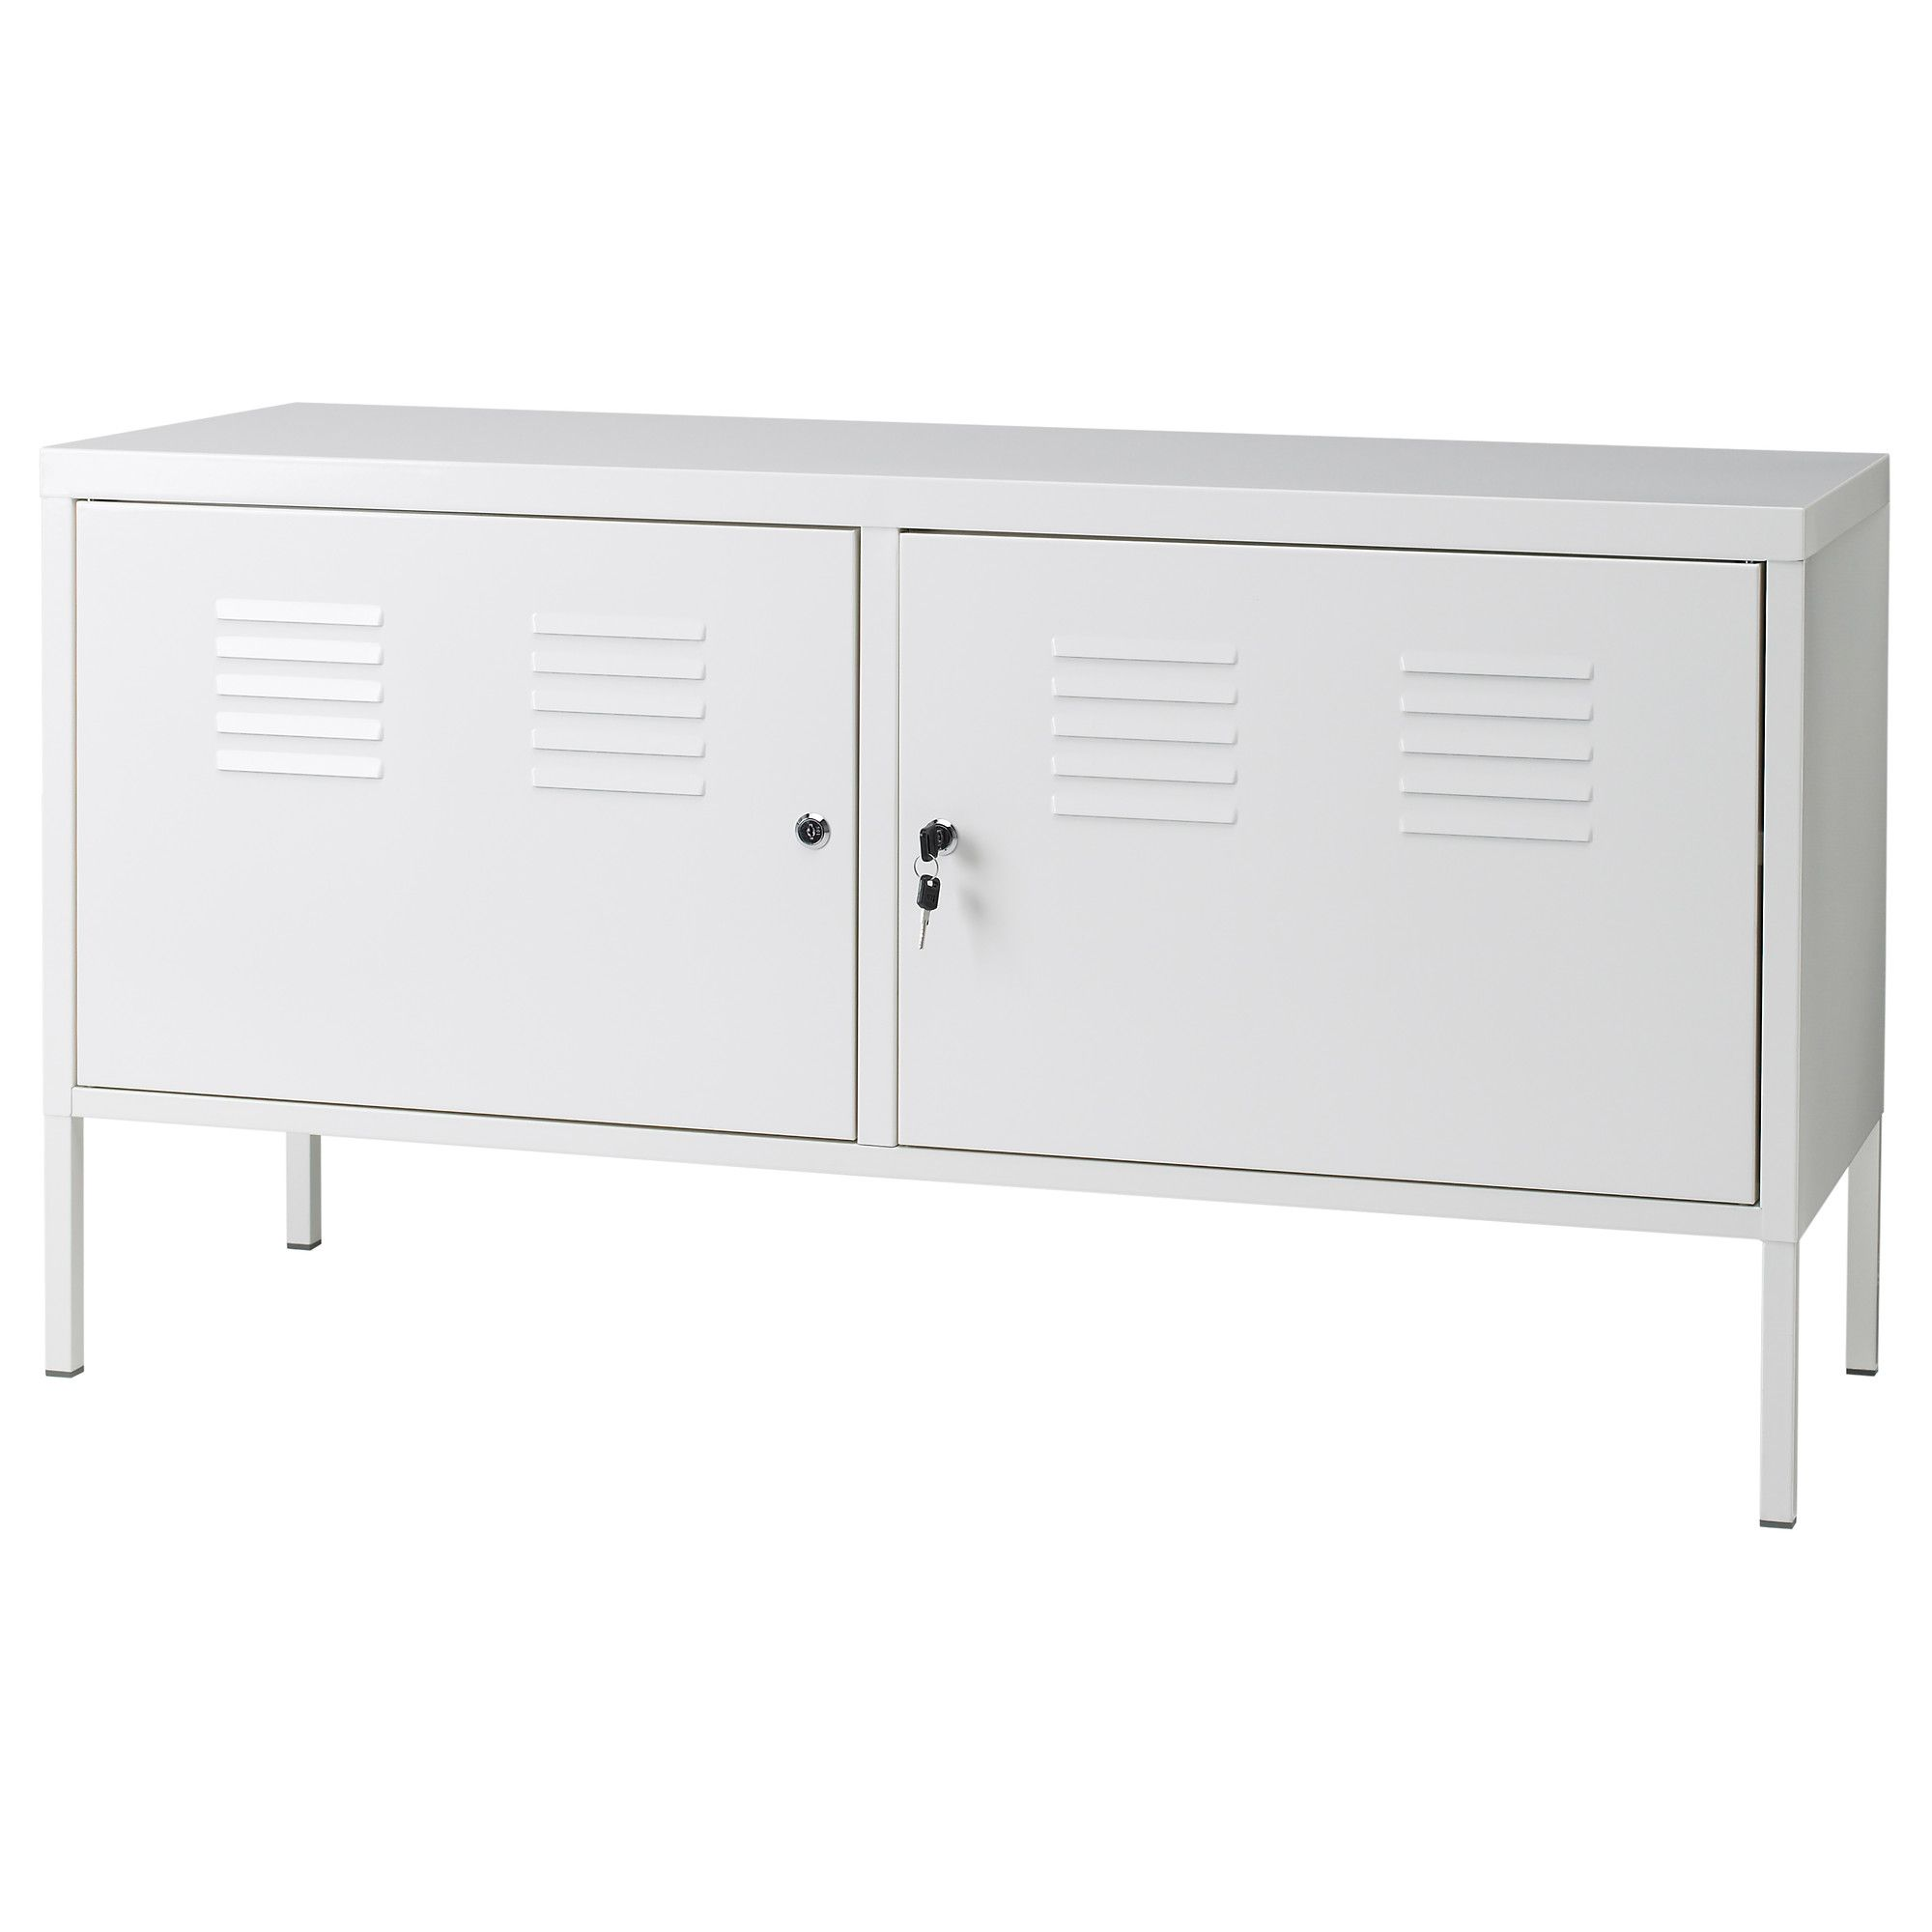 Captivating IKEA   IKEA PS, Cabinet, White, , A Cord Outlet Underneath Makes It